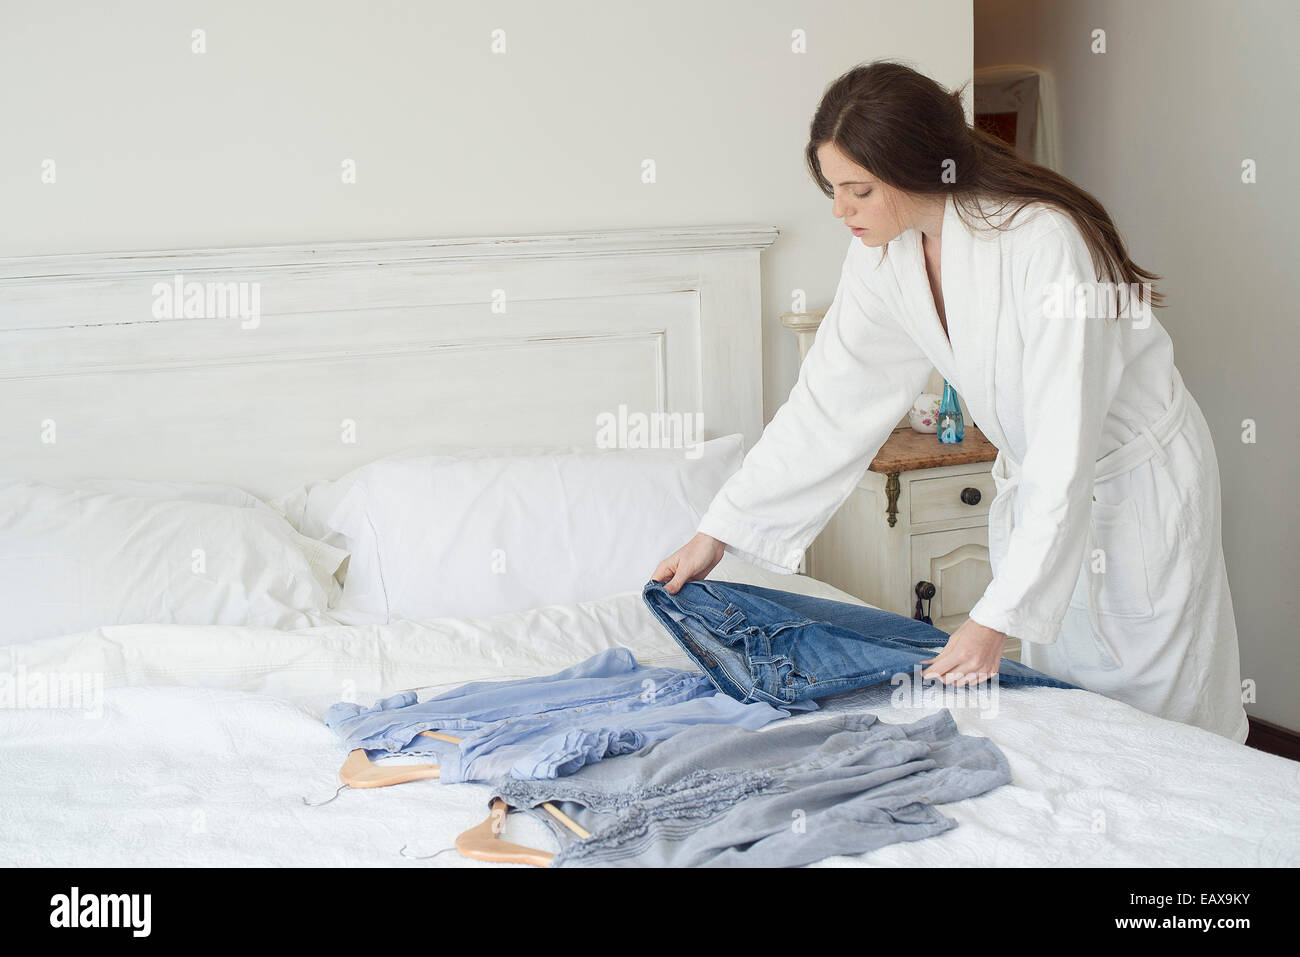 Woman choosing outfit to wear - Stock Image